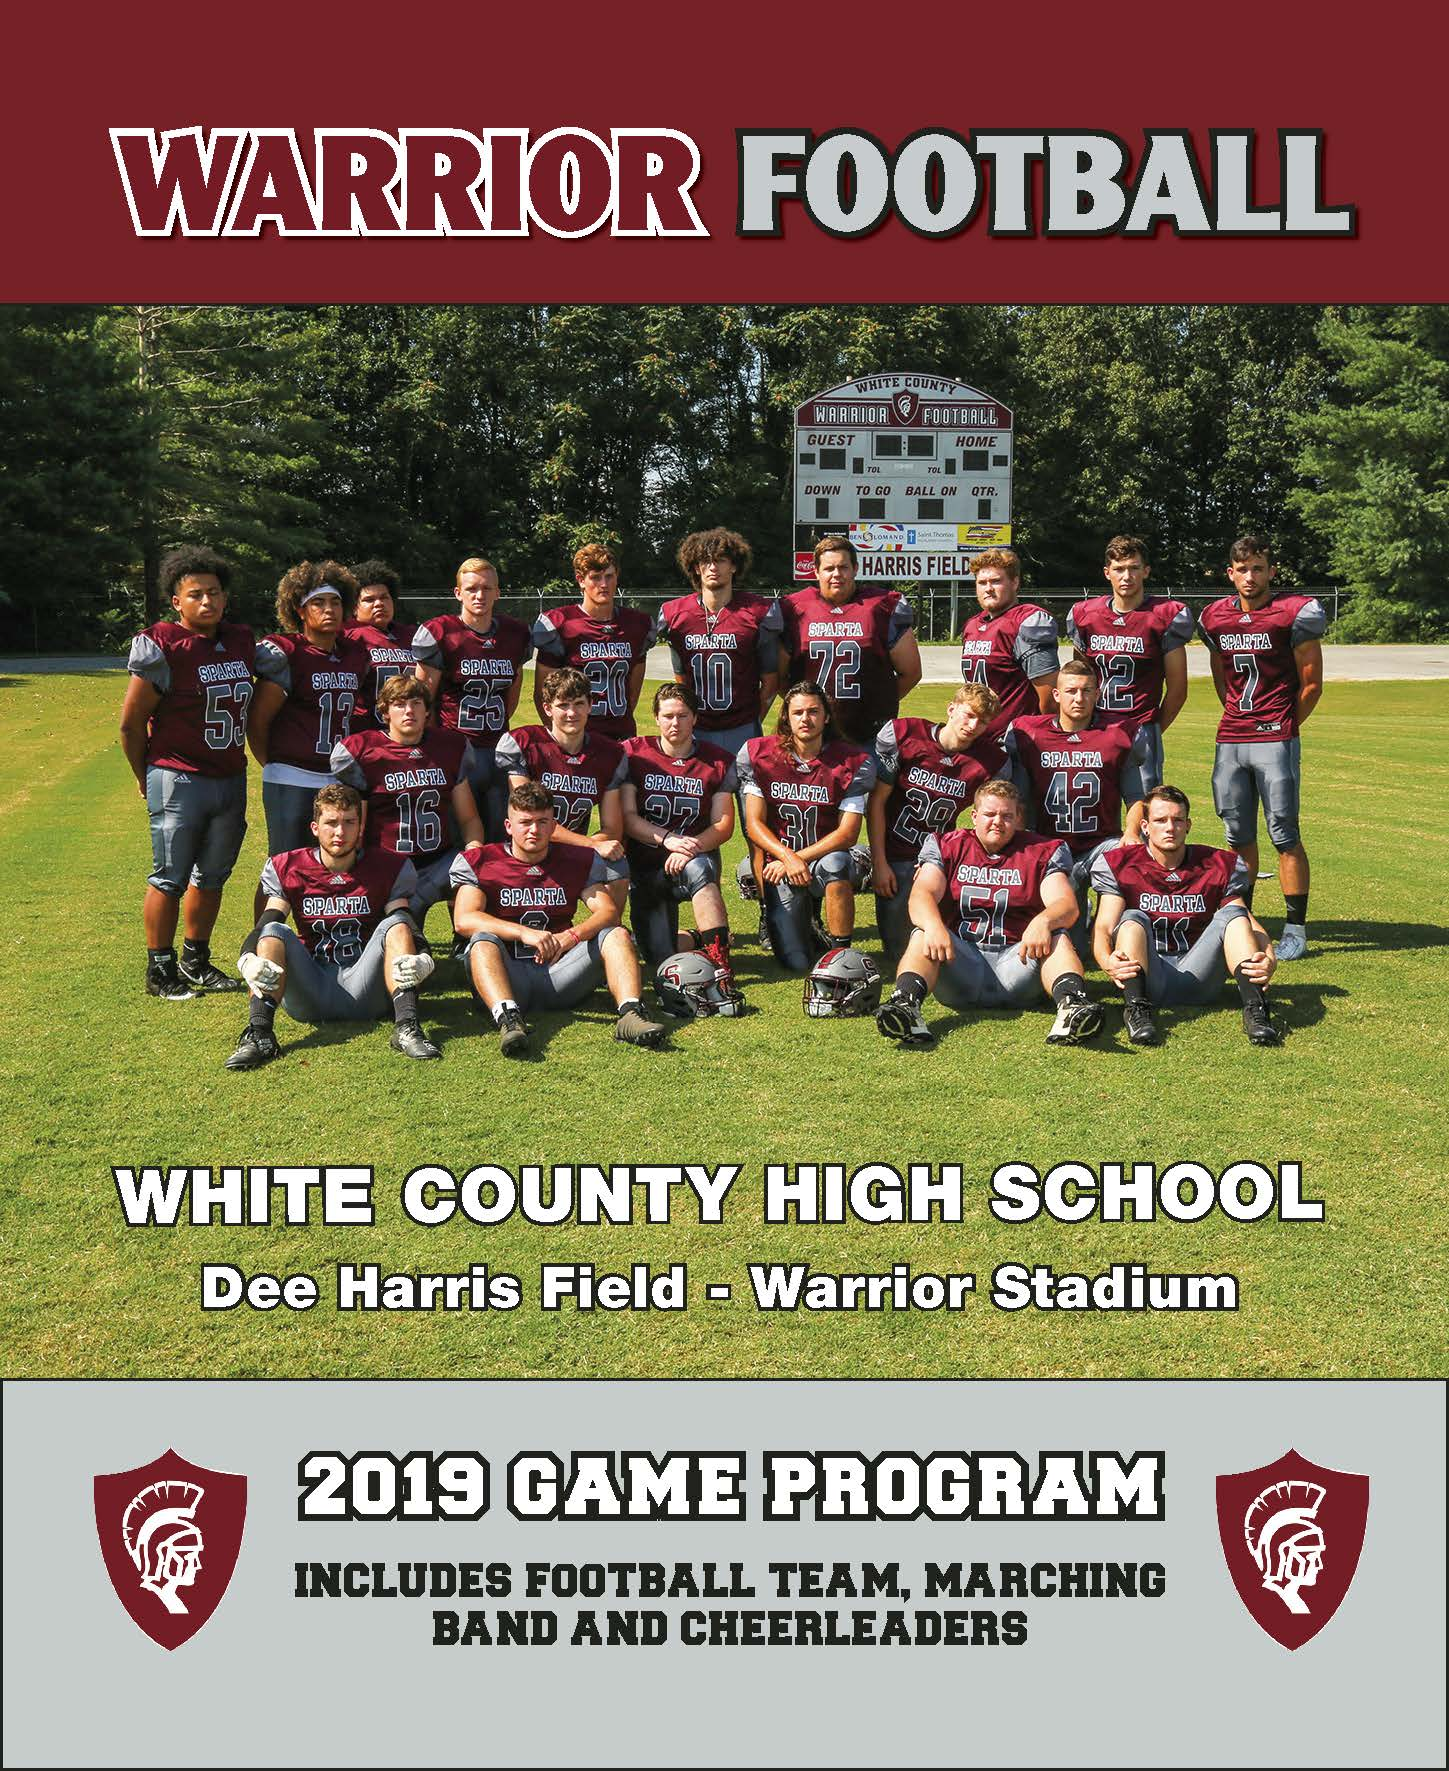 2019 WCHS Football Program<div style='clear:both;width:100%;height:0px;'></div><span class='cat'>Logos and Printwork</span>